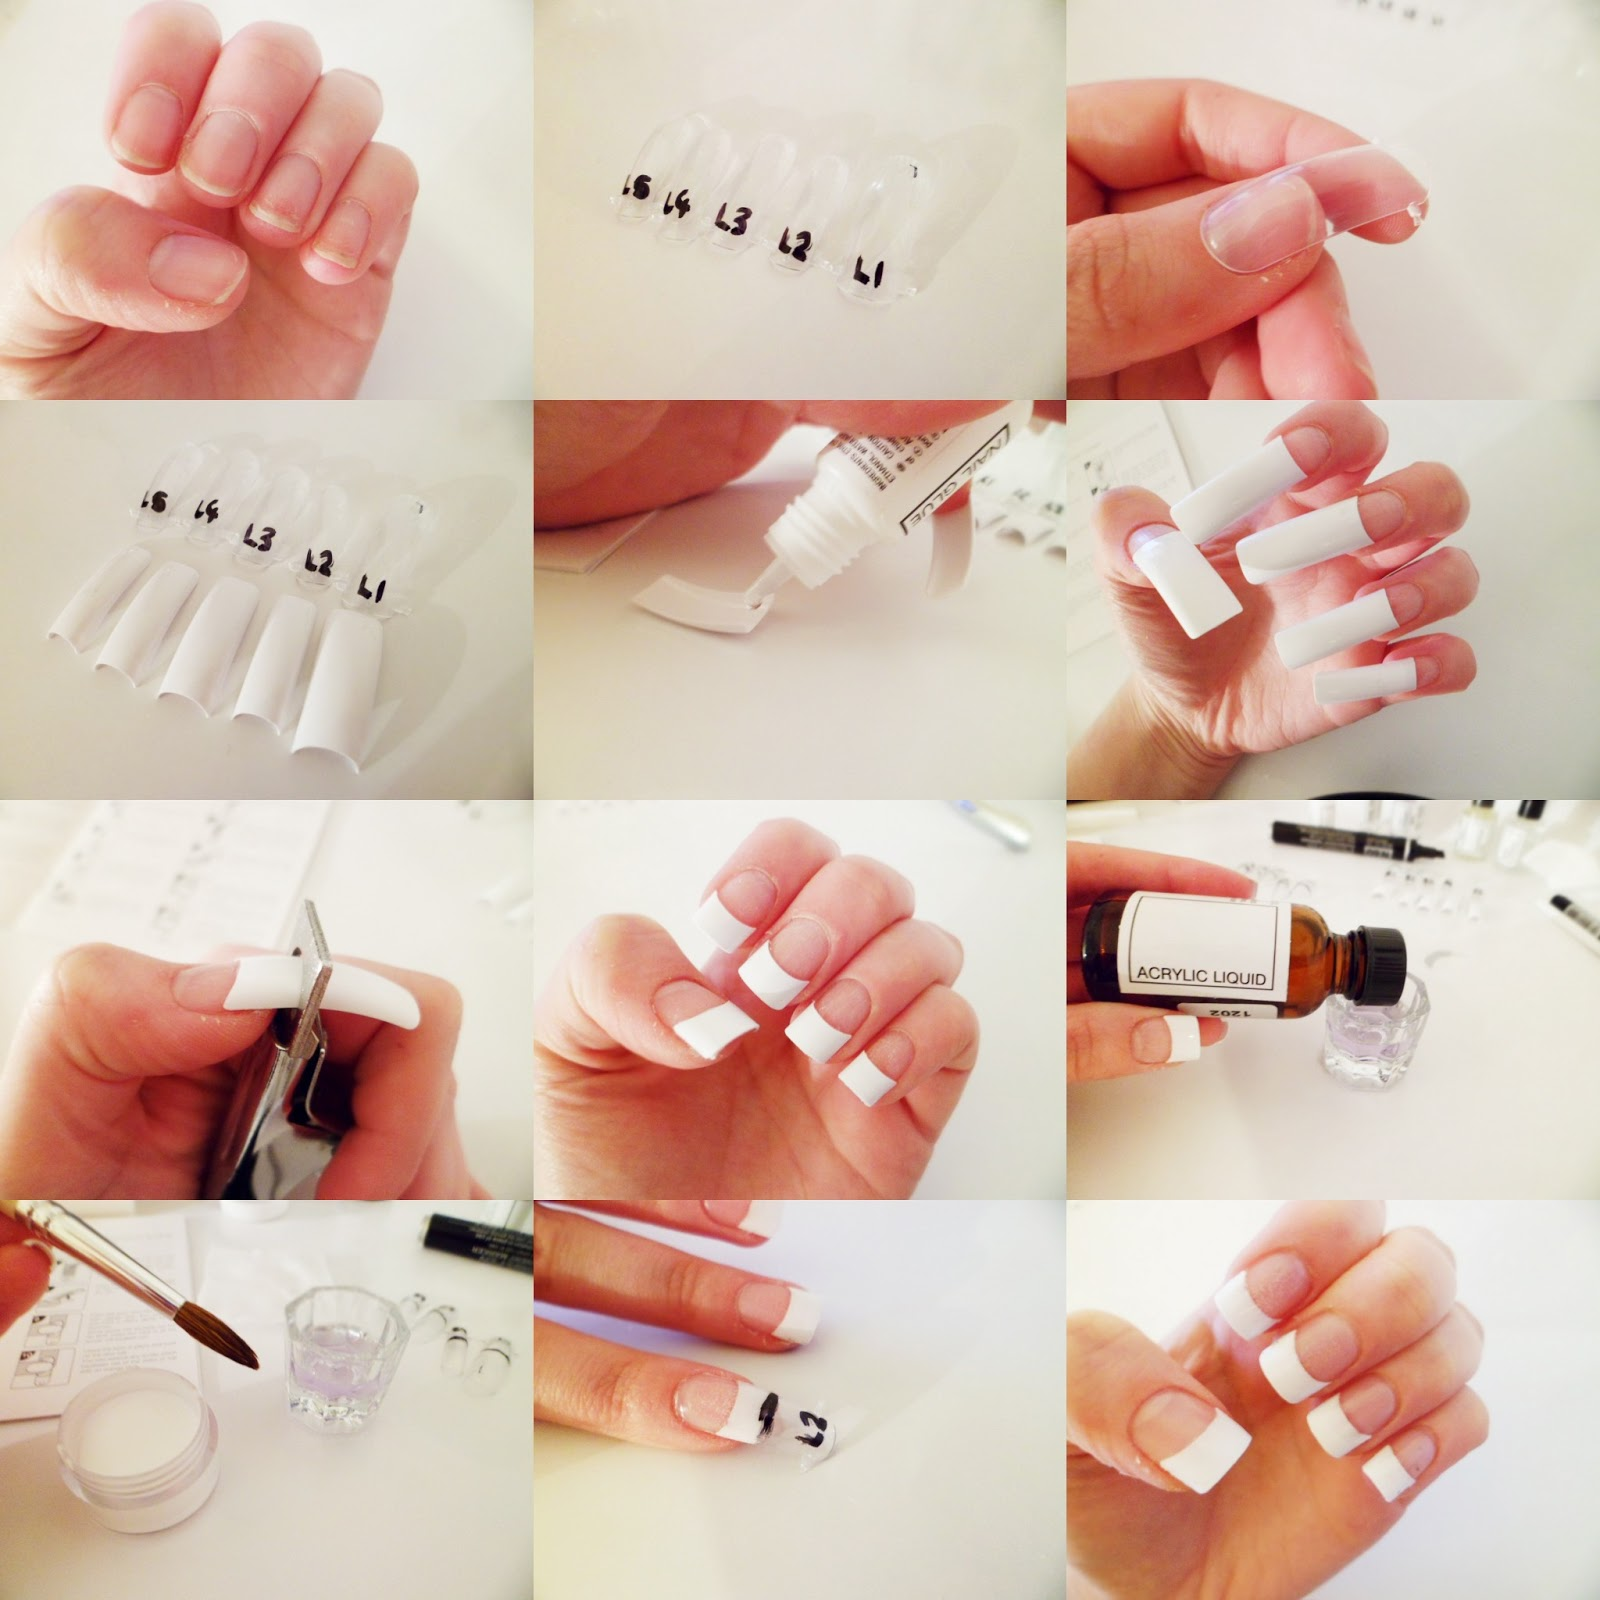 Steps to do acrylic nails - New Expression Nails